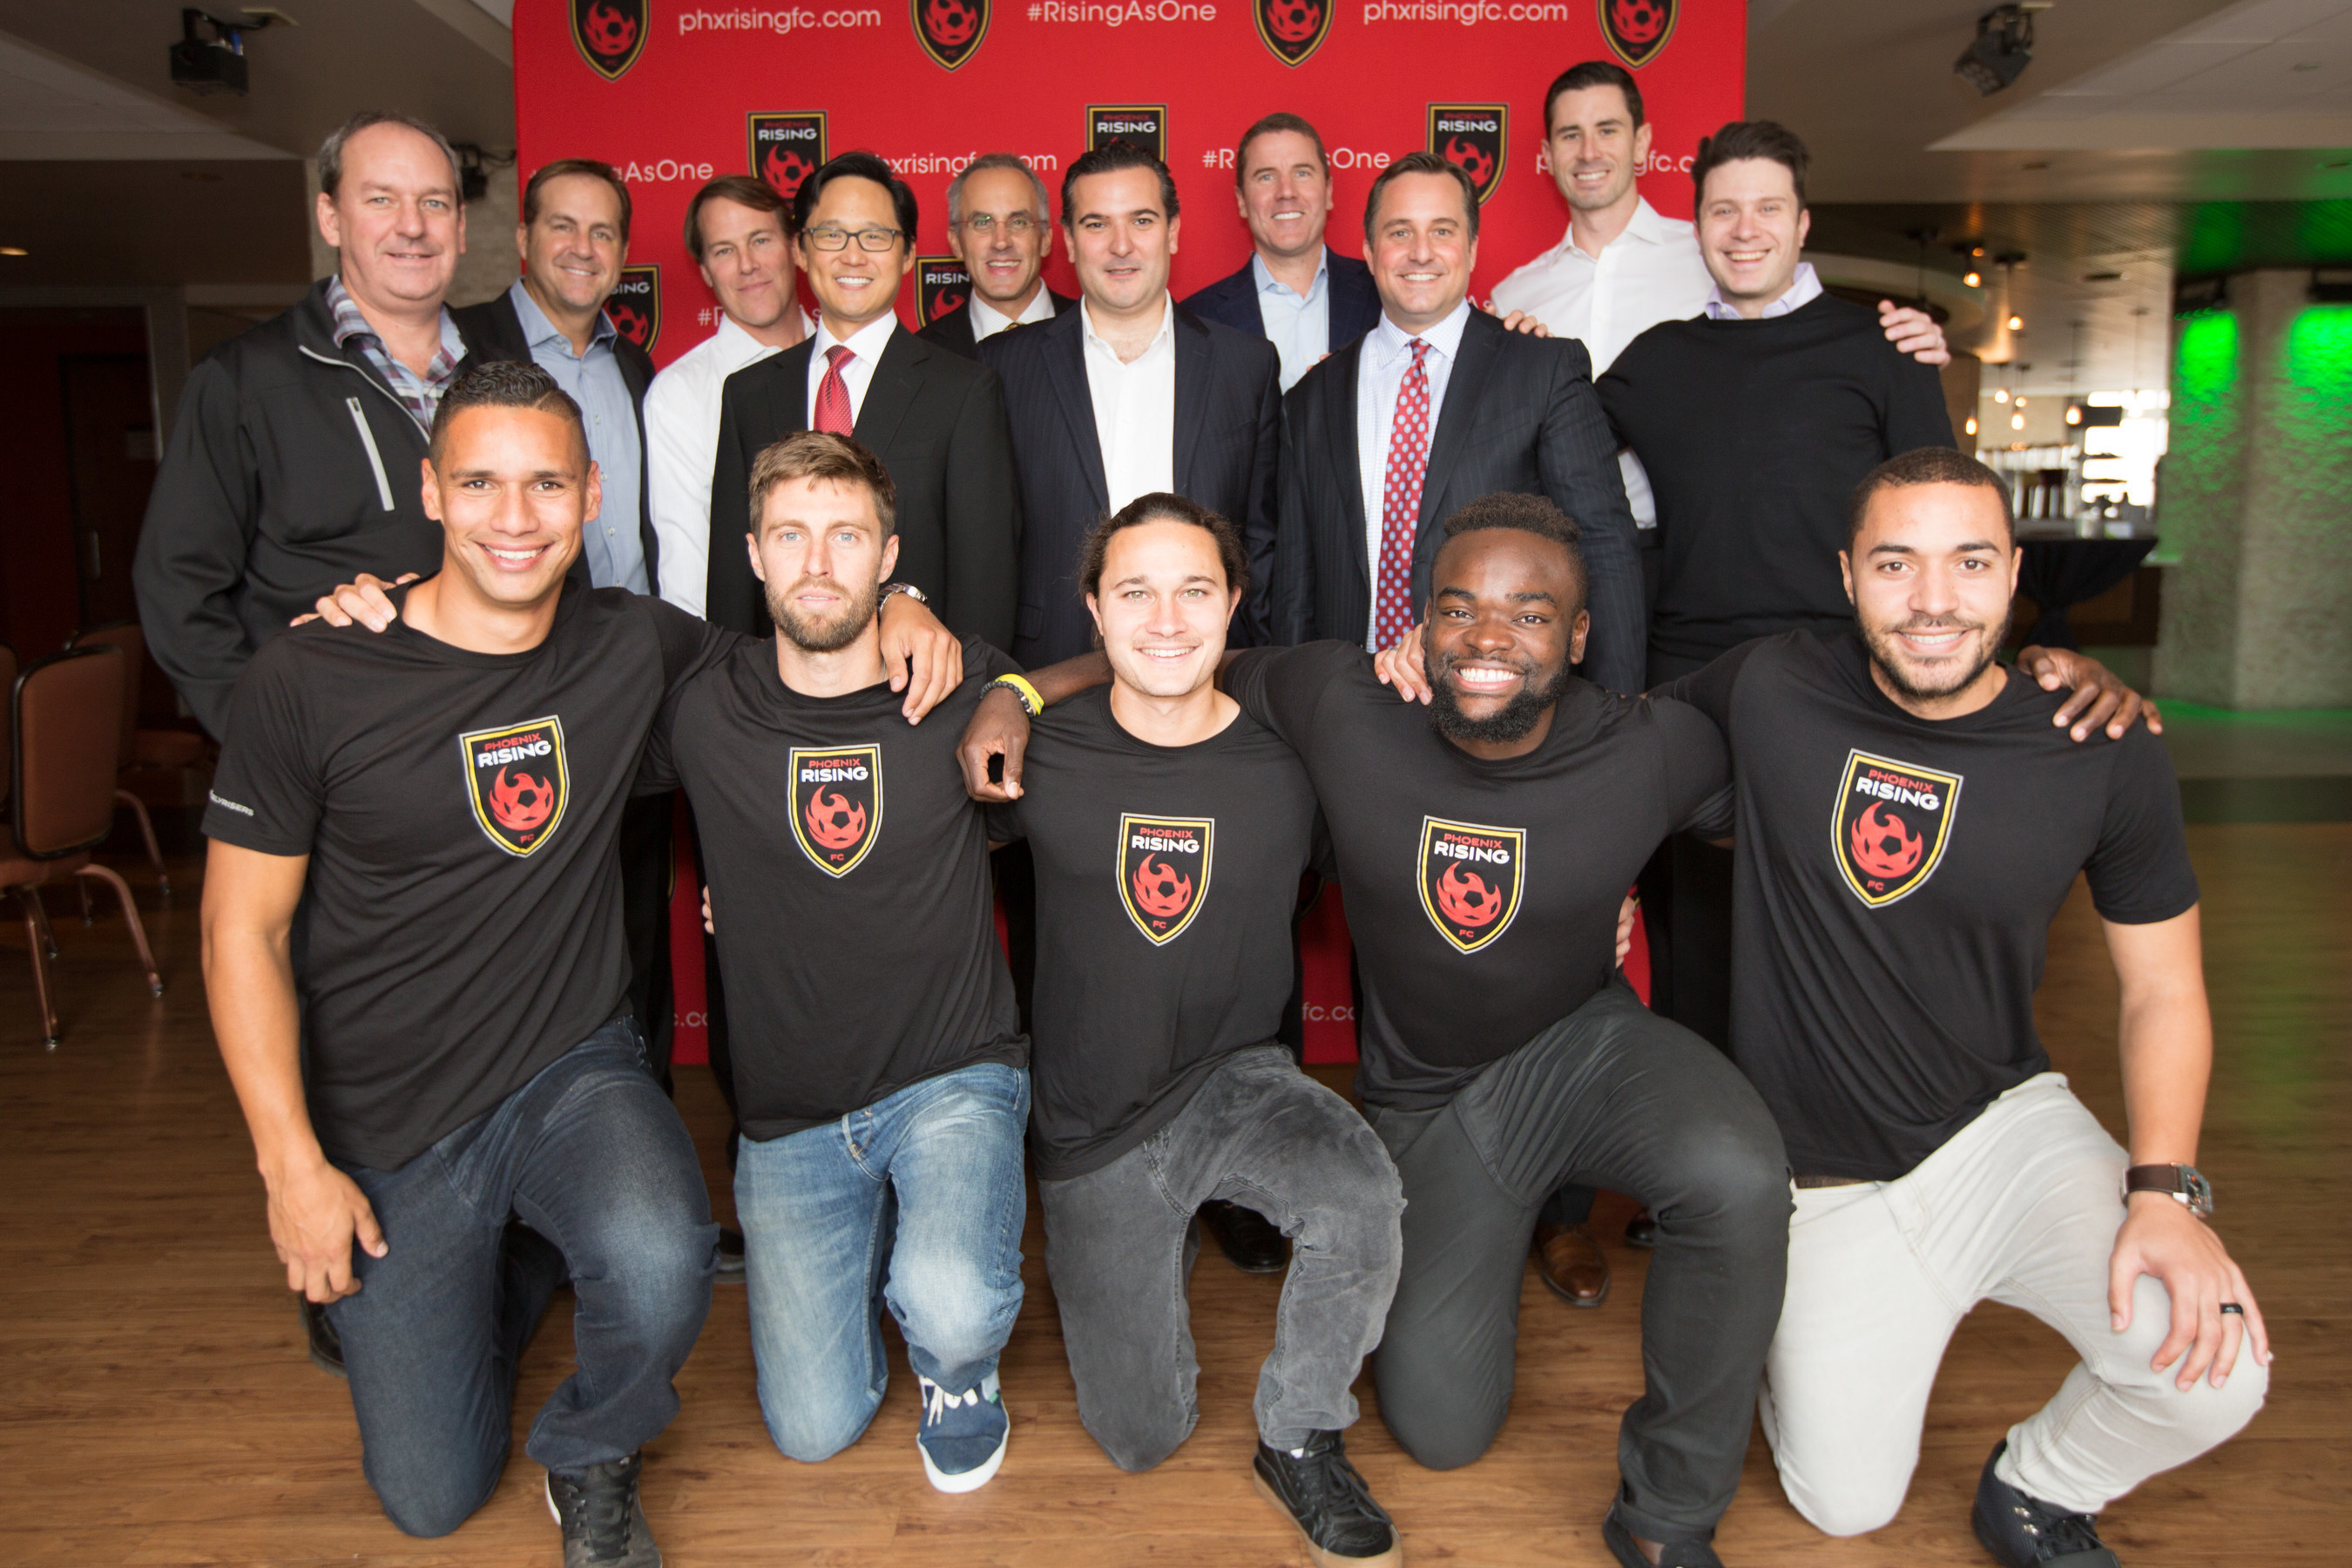 Phoenix Rising FC, Arizona's only professional soccer franchise, unveiled a new name and plans to develop a 15.8-acre soccer-specific training and stadium facility